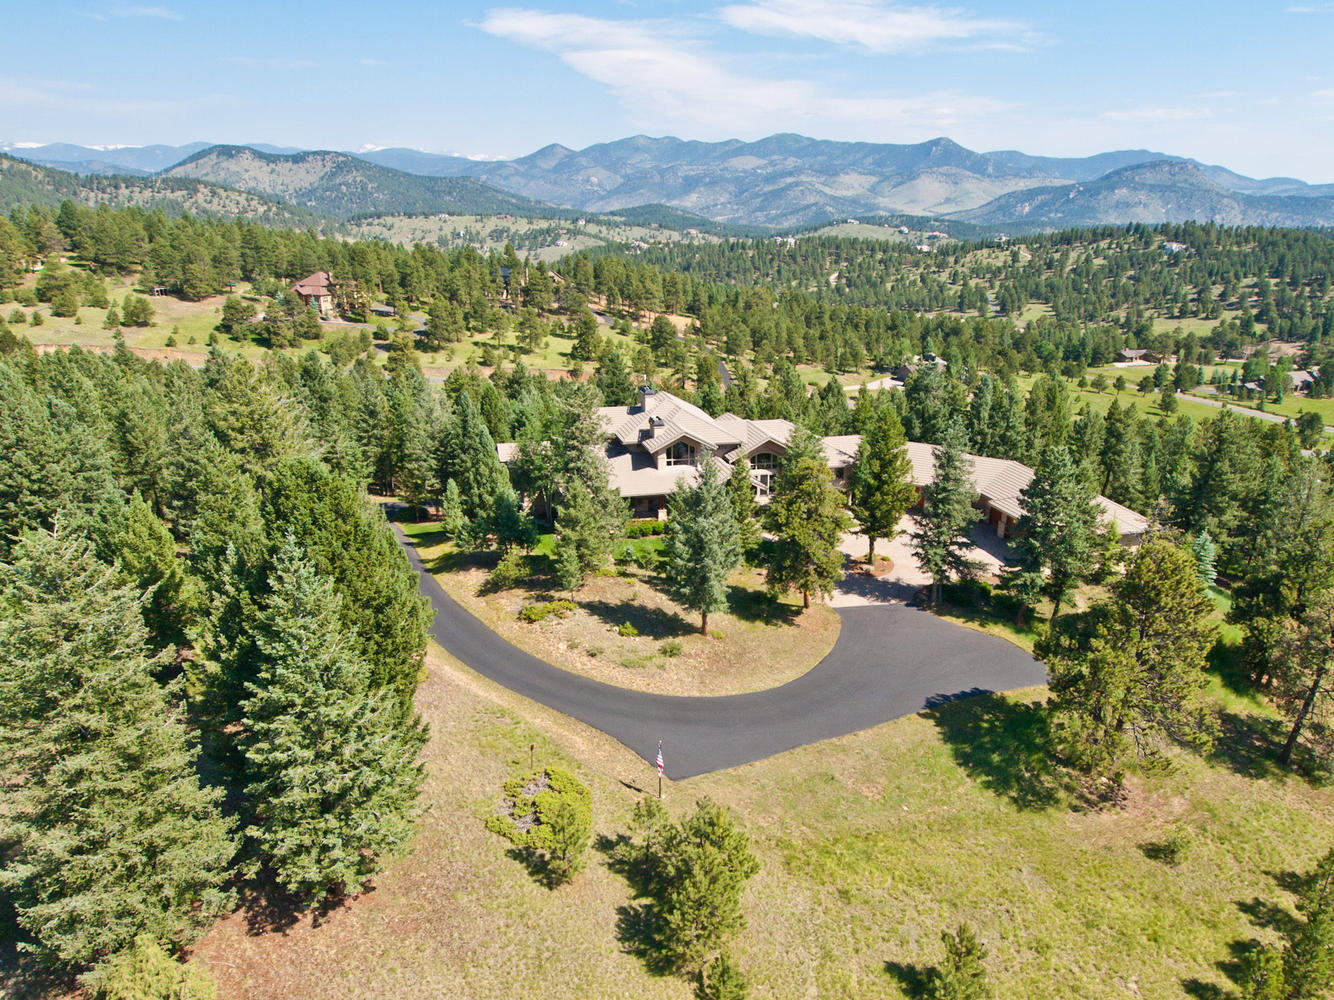 Moradia para Venda às One of Evergreen's Best Locations 32534 Meadow Mountain Lane Evergreen, Colorado, 80439 Estados Unidos